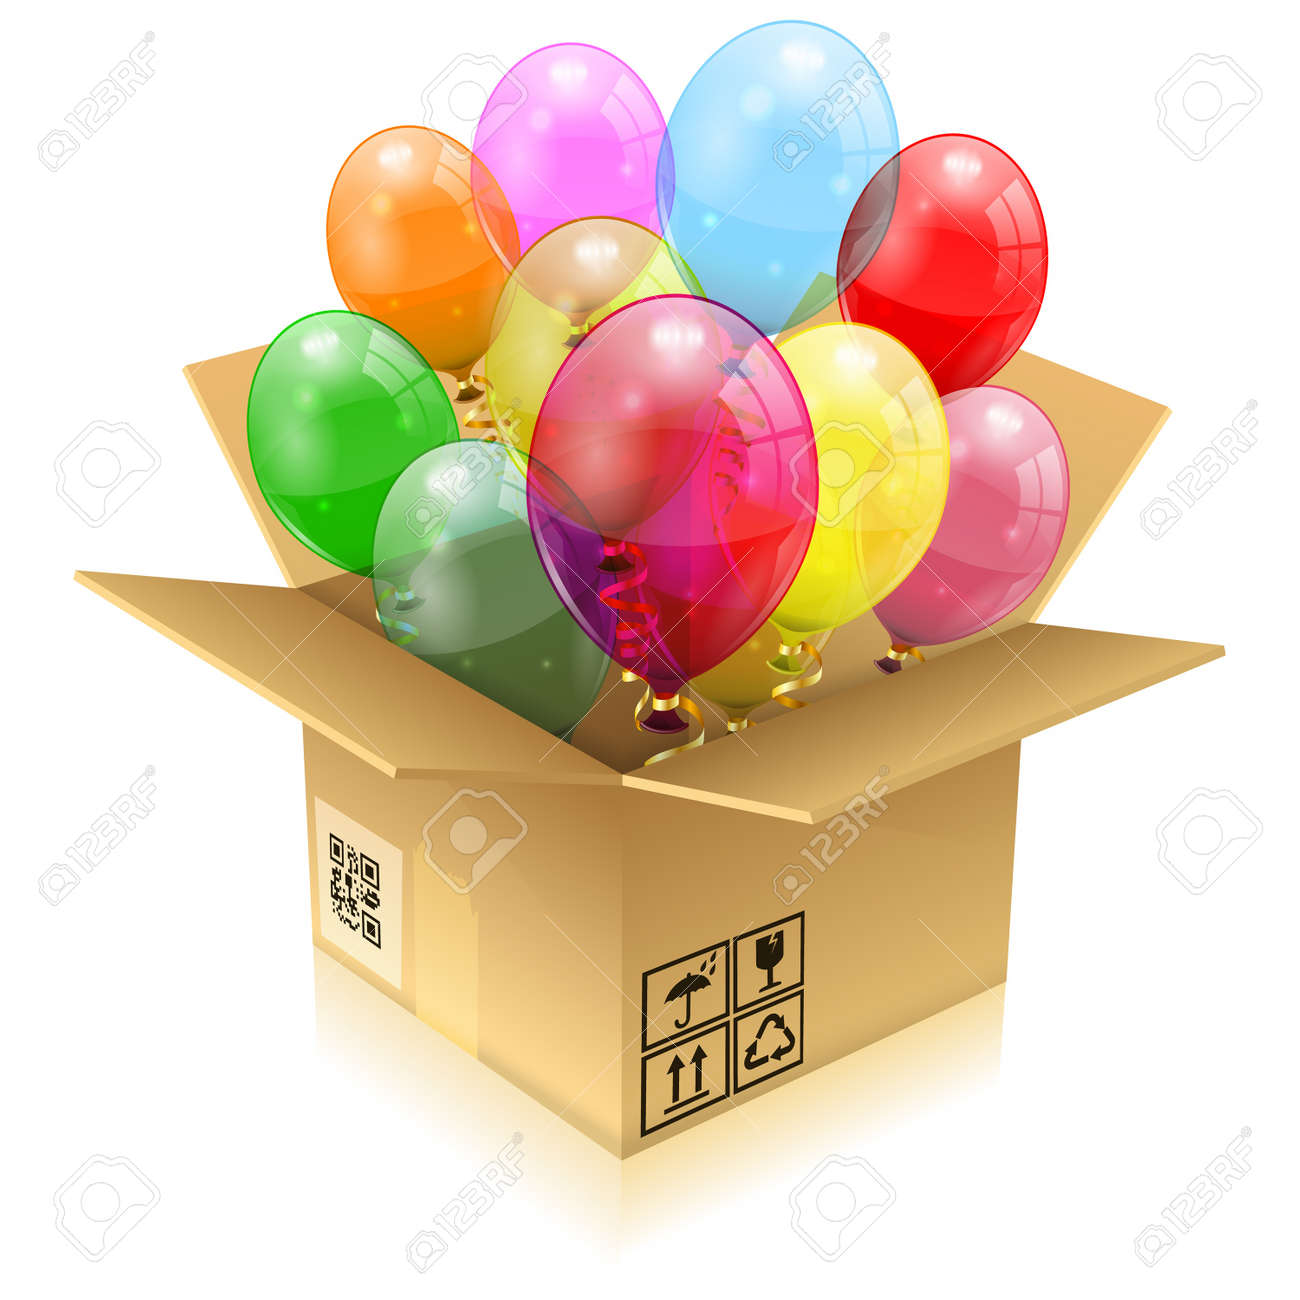 Open Cardboard Box With 3D Transparent Birthday Balloons Streamer Isolated On White Easy